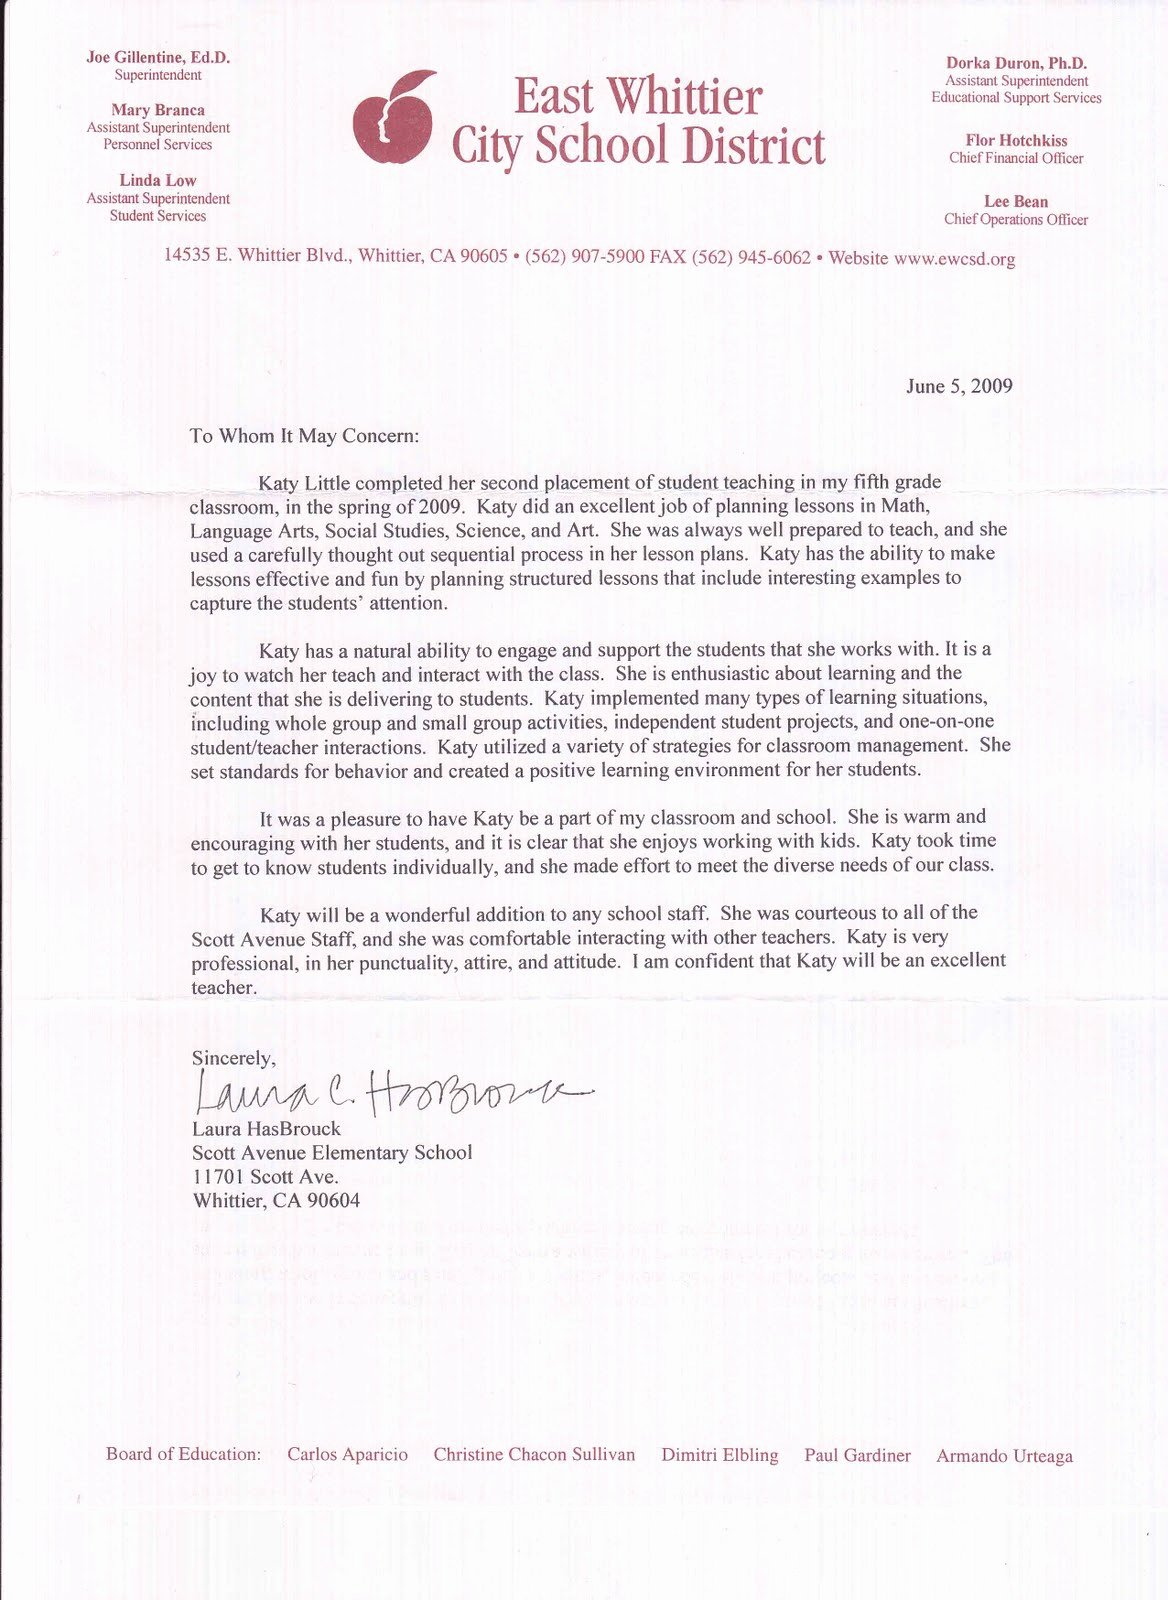 Student Teacher Letter Of Recommendation New Kathryn Little Letters Of Re Mendation Student Teaching